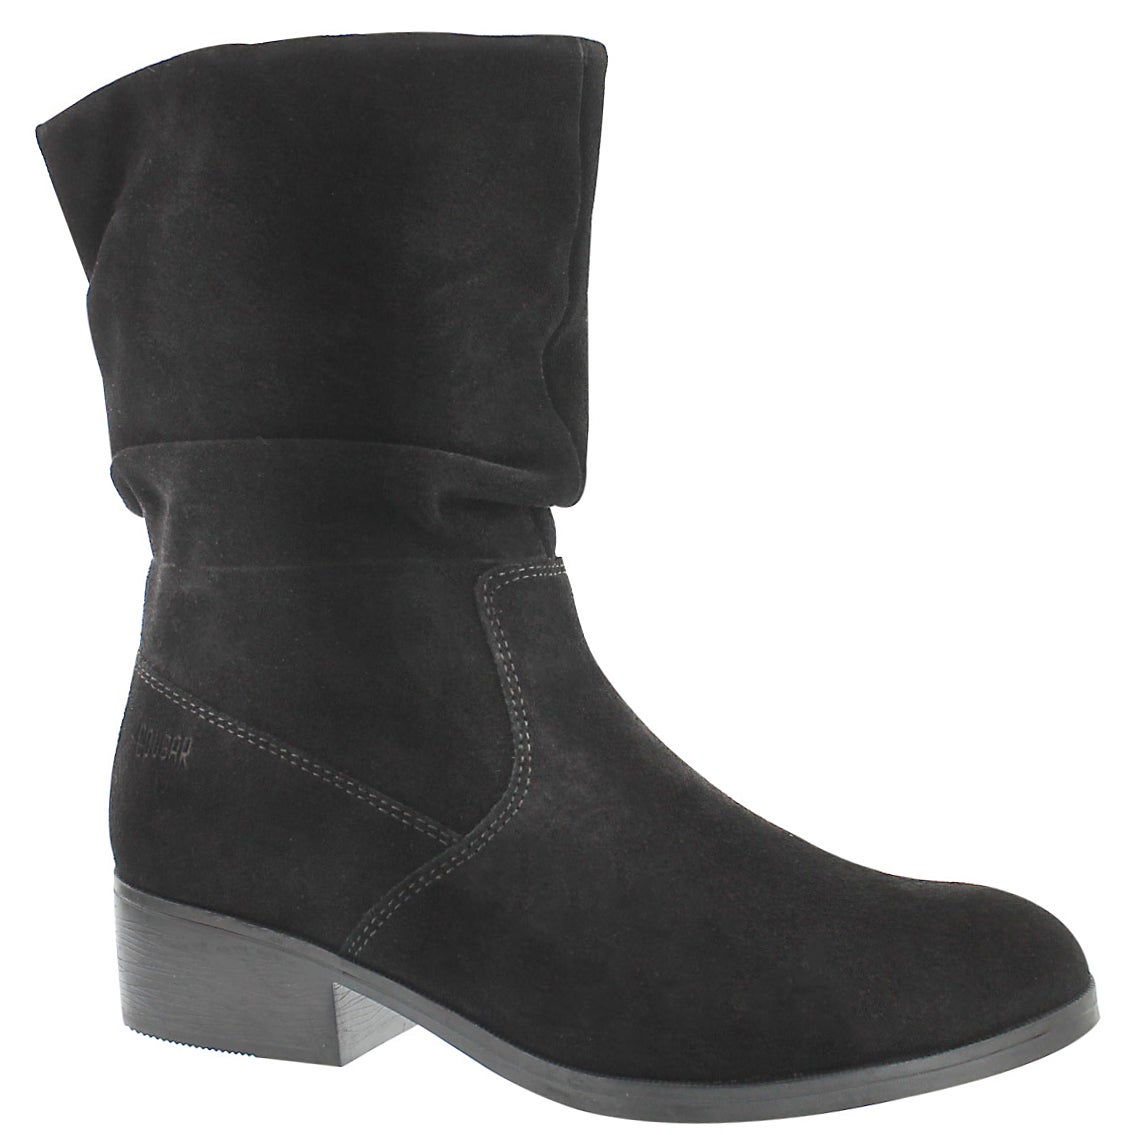 Women's CHICHI black suede waterproof booties